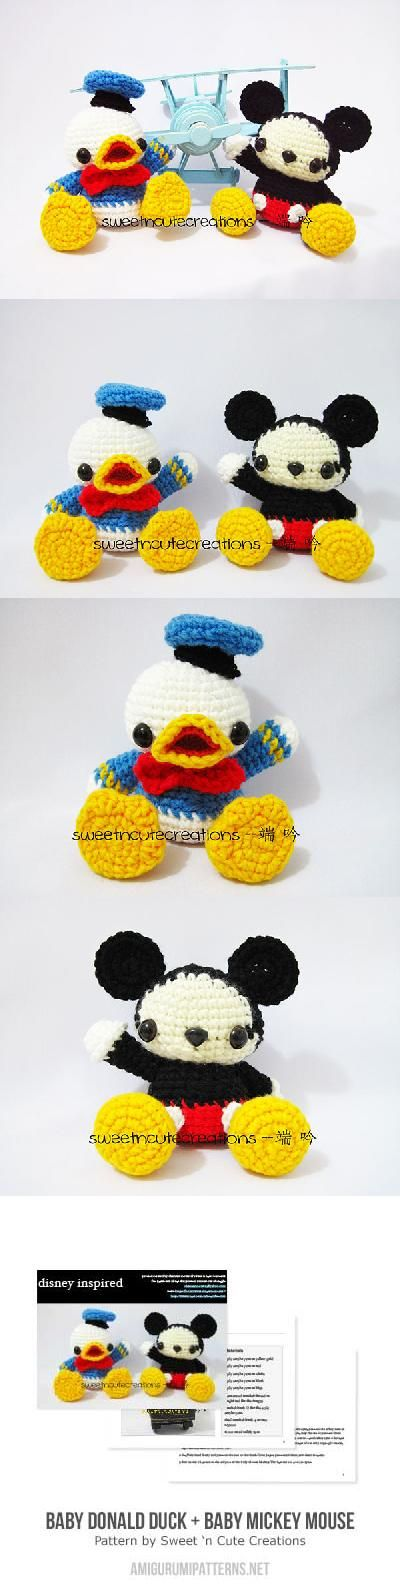 Baby Donald Duck + Baby Mickey Mouse amigurumi pattern by Sweet N ...